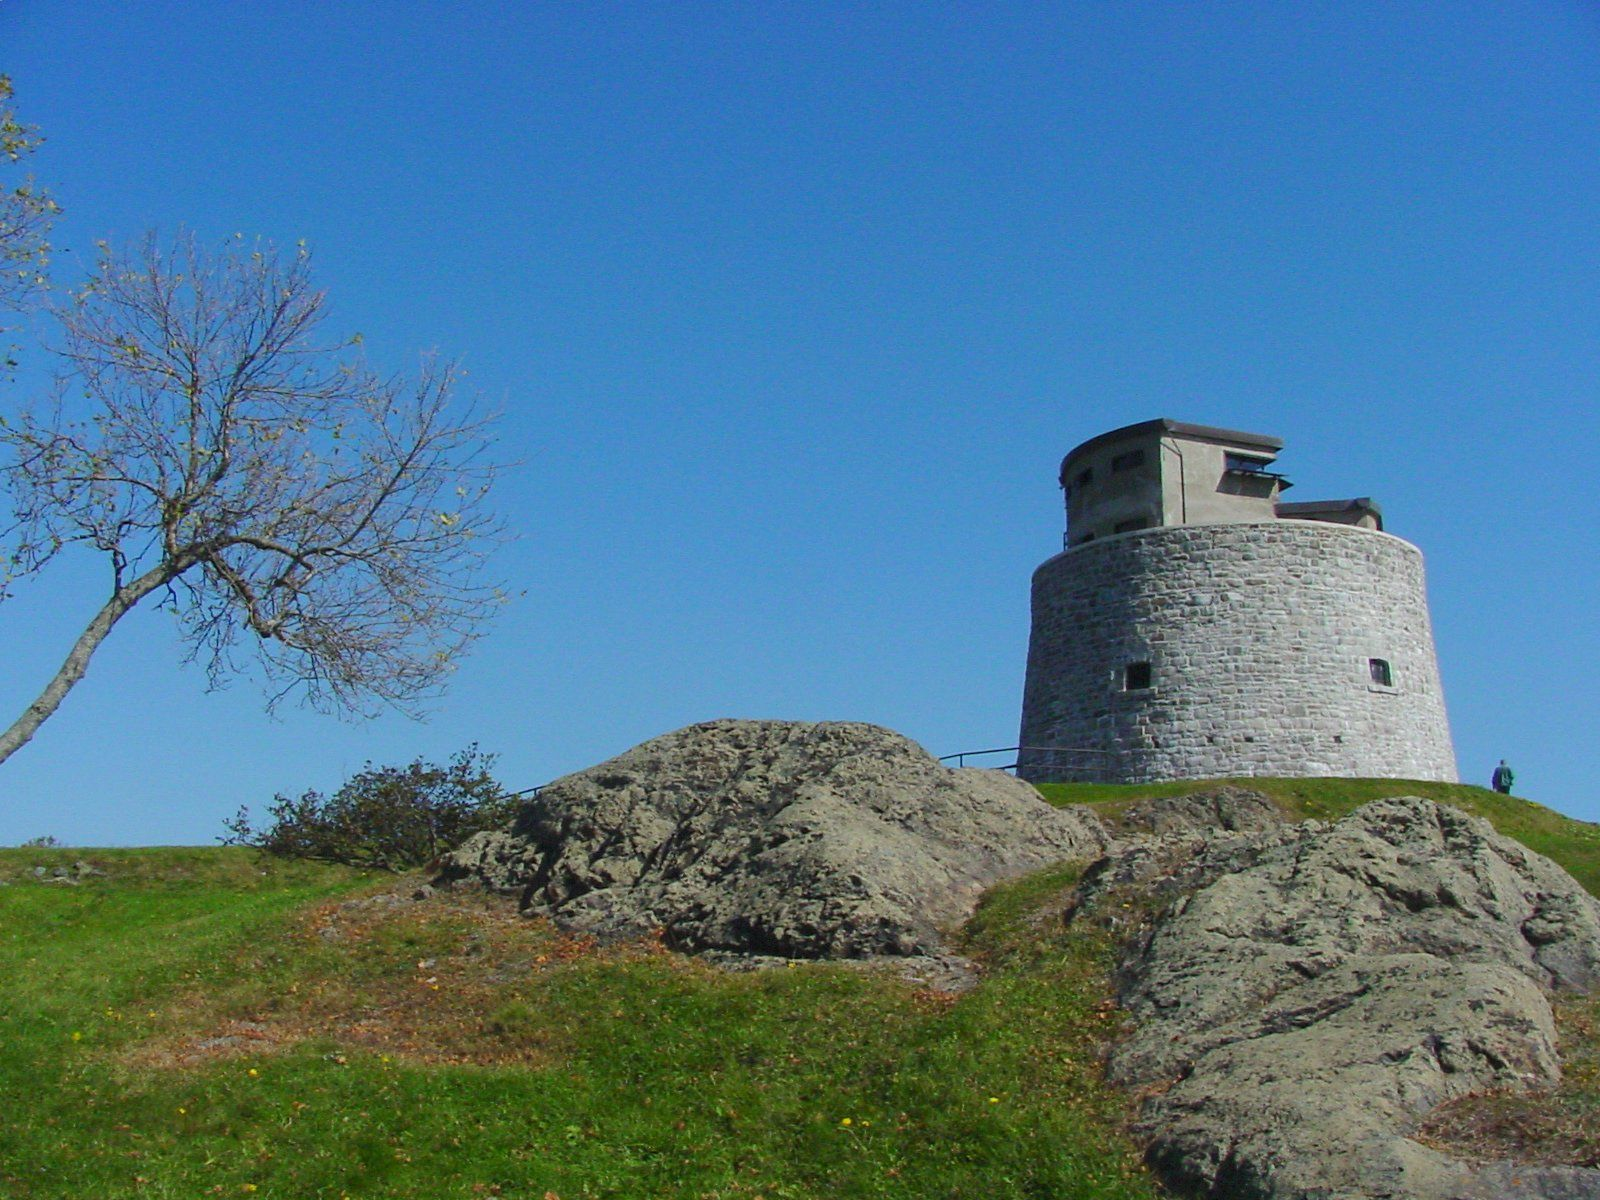 The Carleton Martello Tower